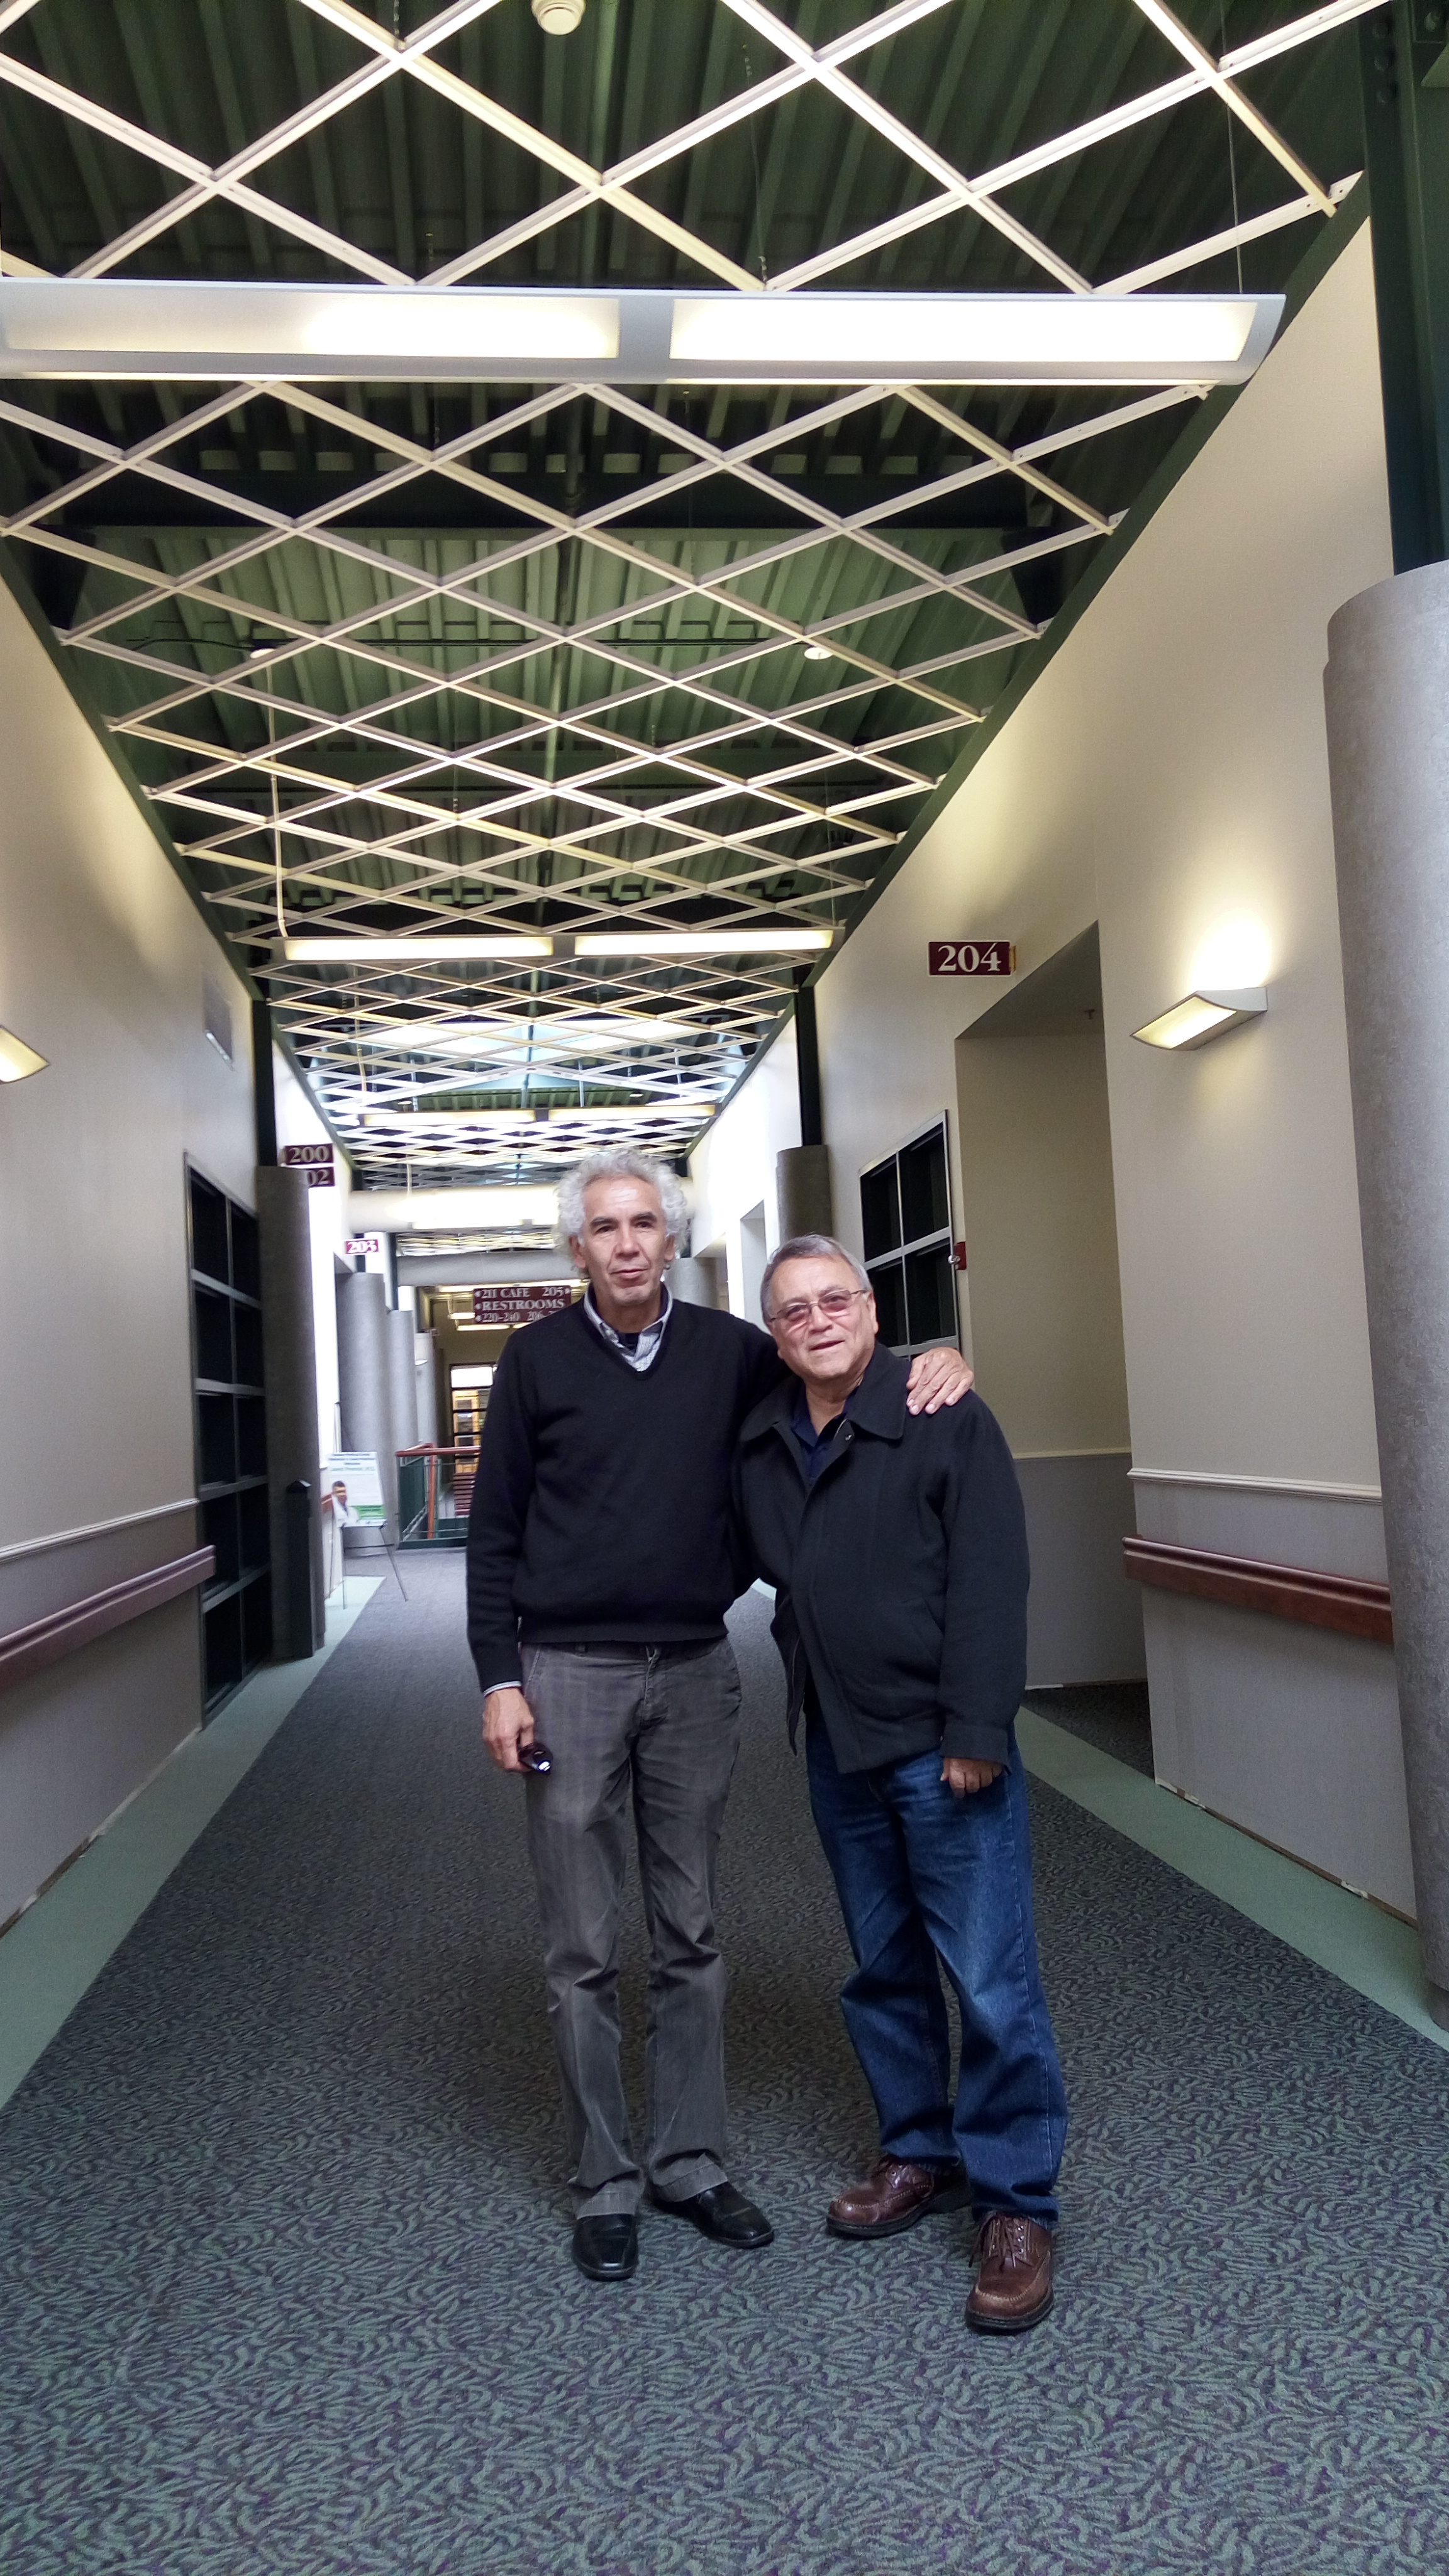 Prof. Dr. Gustavo Zubieta-Calleja and Dr. Oscar Murillo, in the offices he constructed with two colleagues.